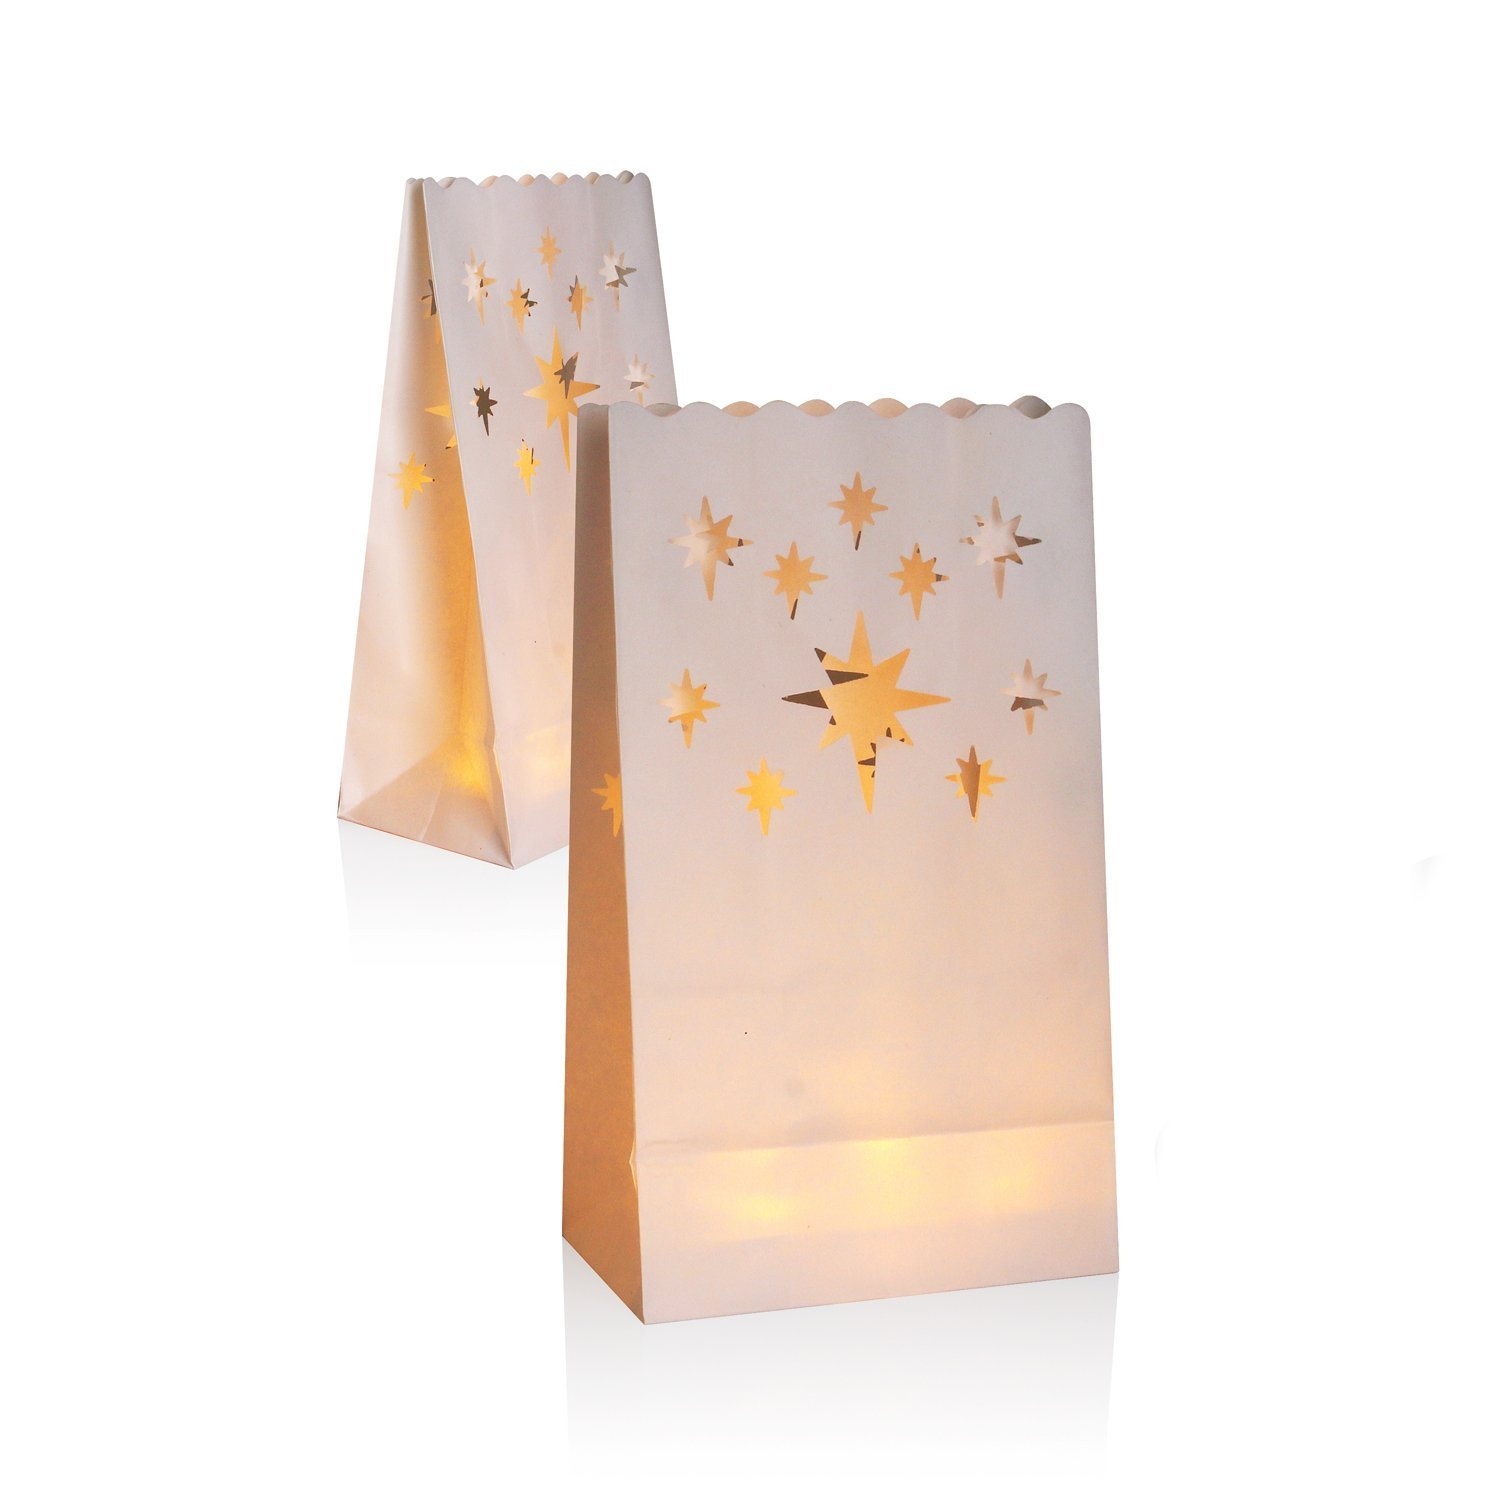 30 White Paper Lantern Luminary Bags- Perfect For Wedding, Reception, Party and Event Decor - Flame Resistant Paper (meteor)